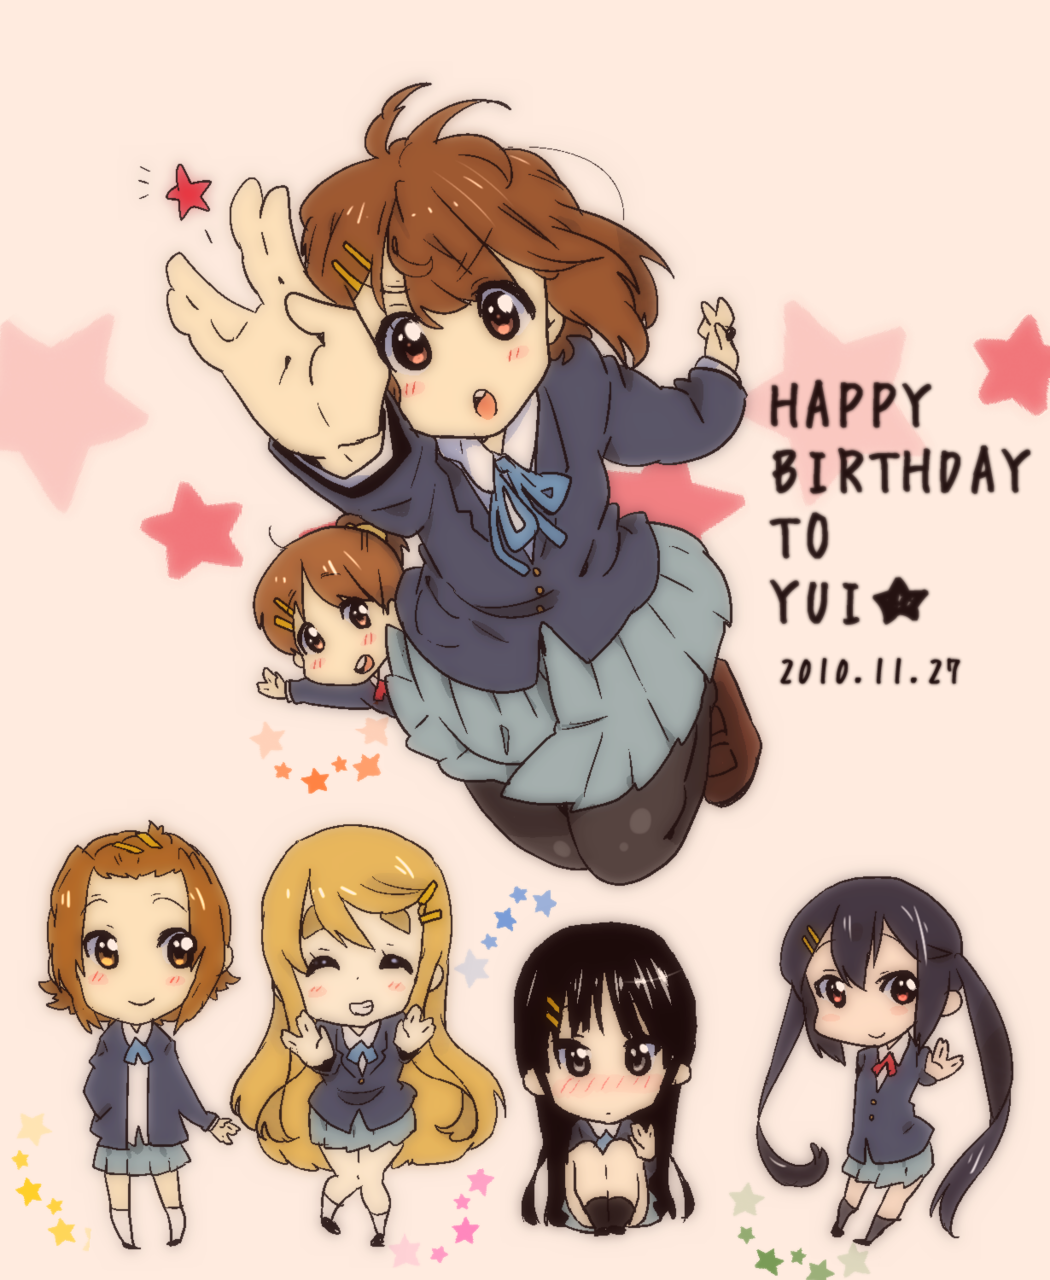 Happy Birthday Yui!